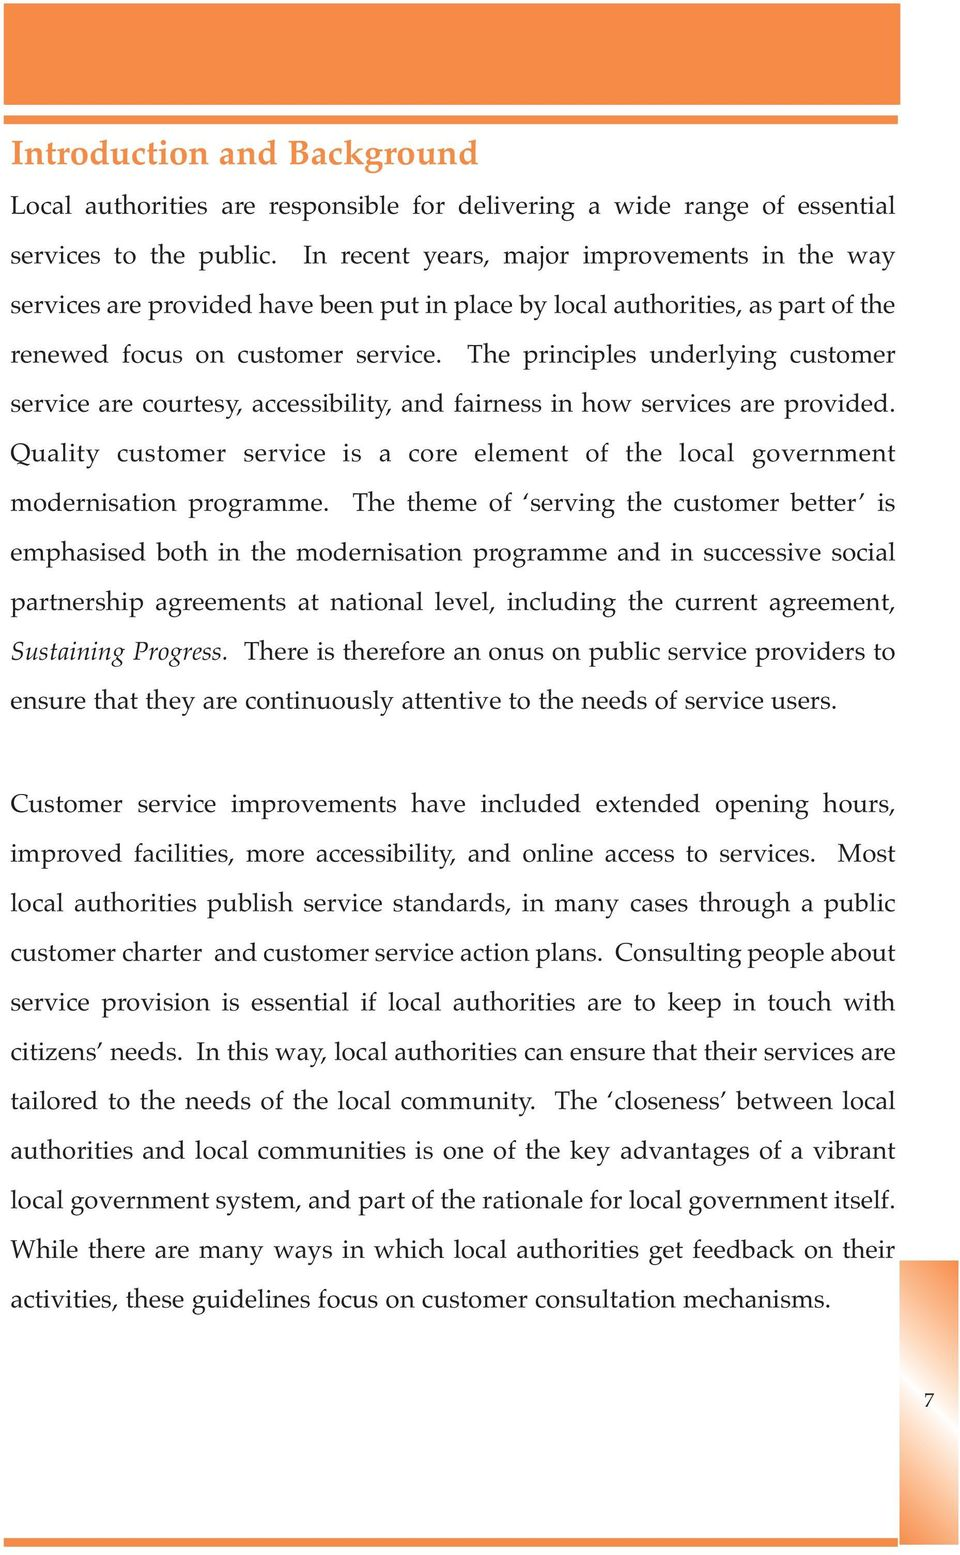 The principles underlying customer service are courtesy, accessibility, and fairness in how services are provided.